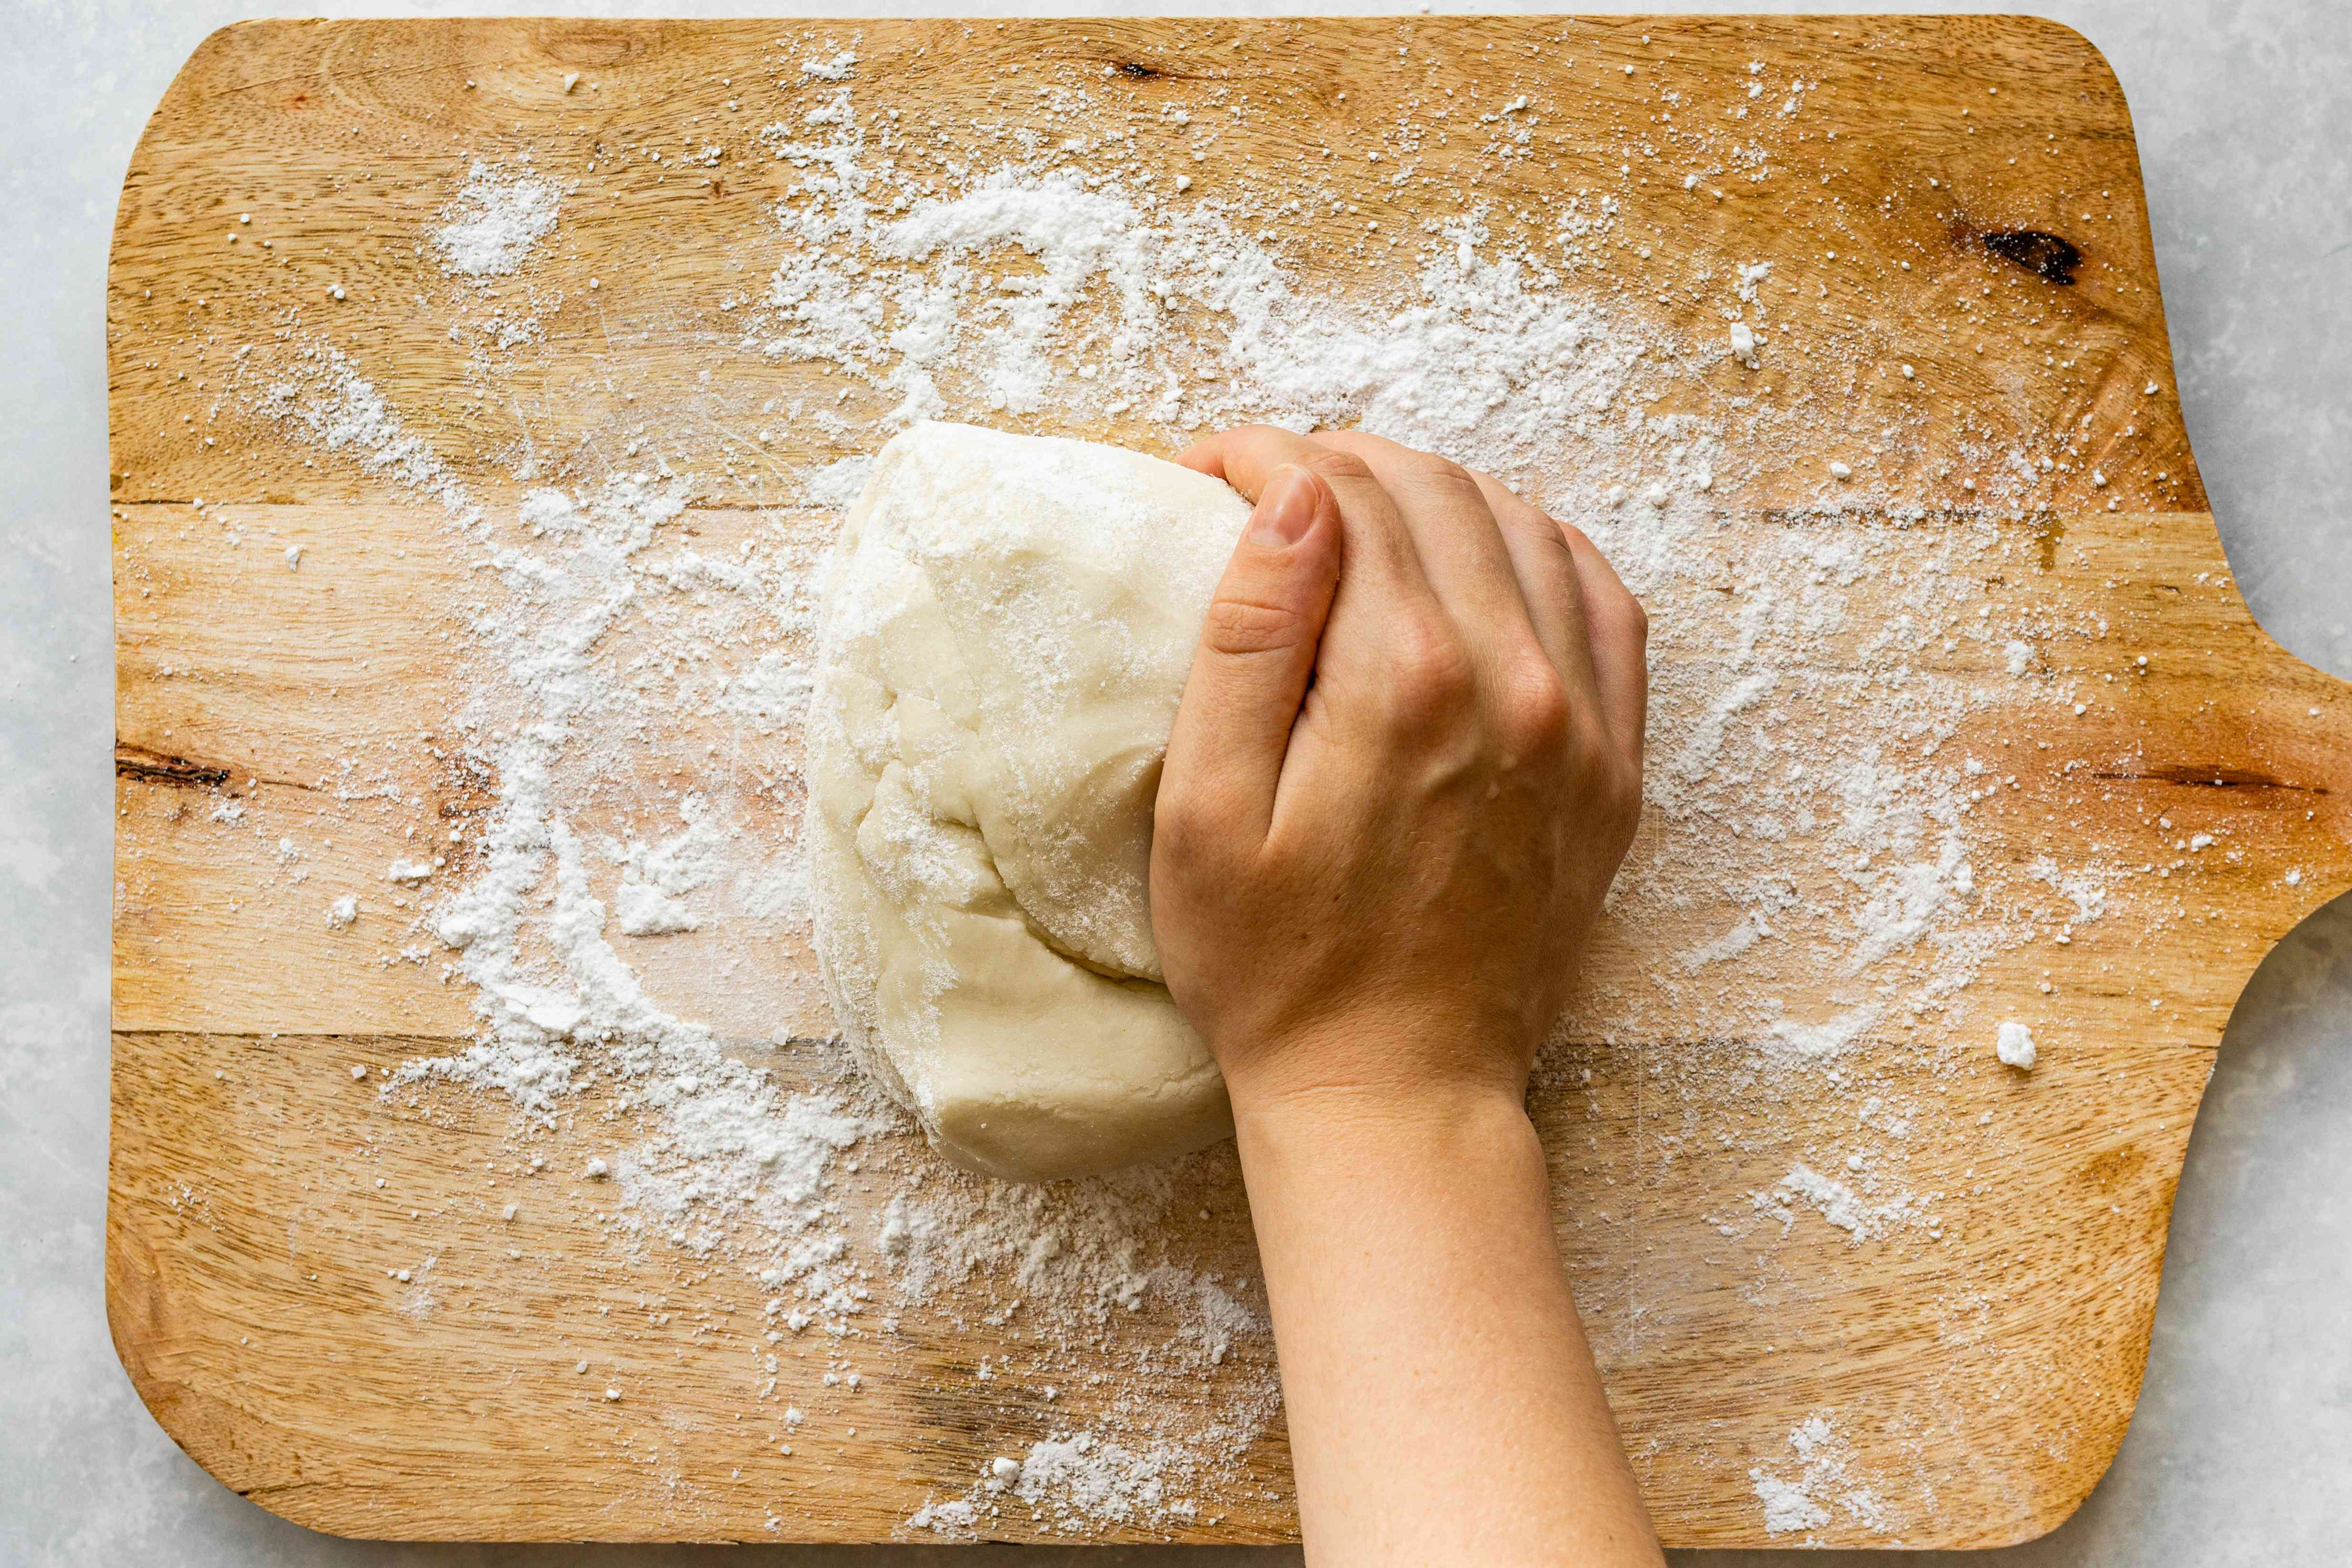 Kneading marzipan on a flour-dusted cutting board